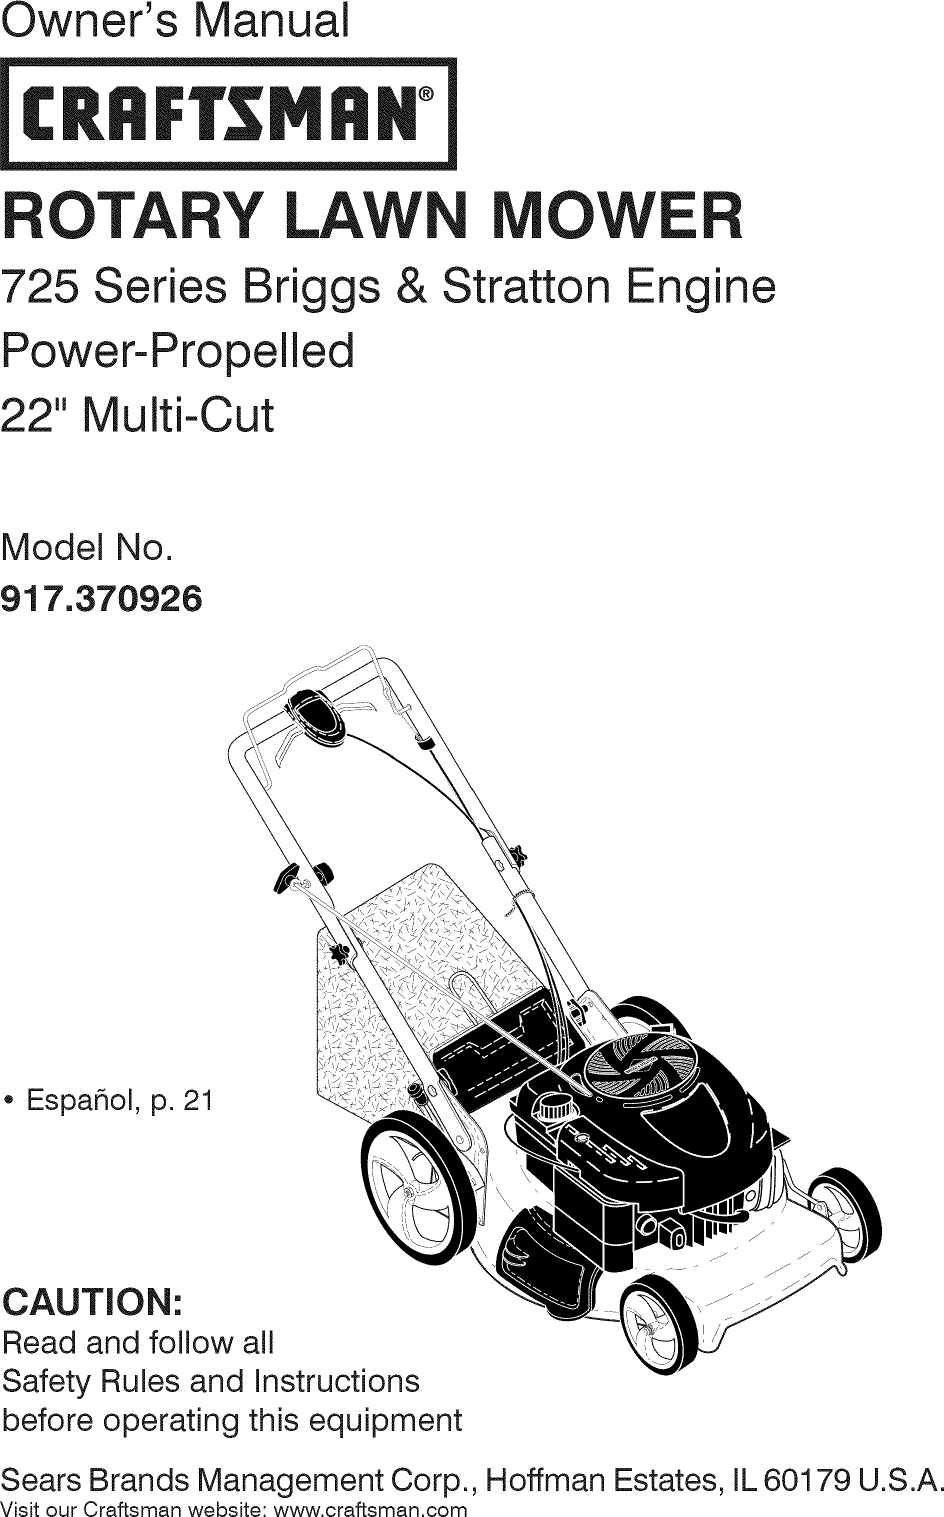 Craftsman Lawn Mower Owners Manual Pdf